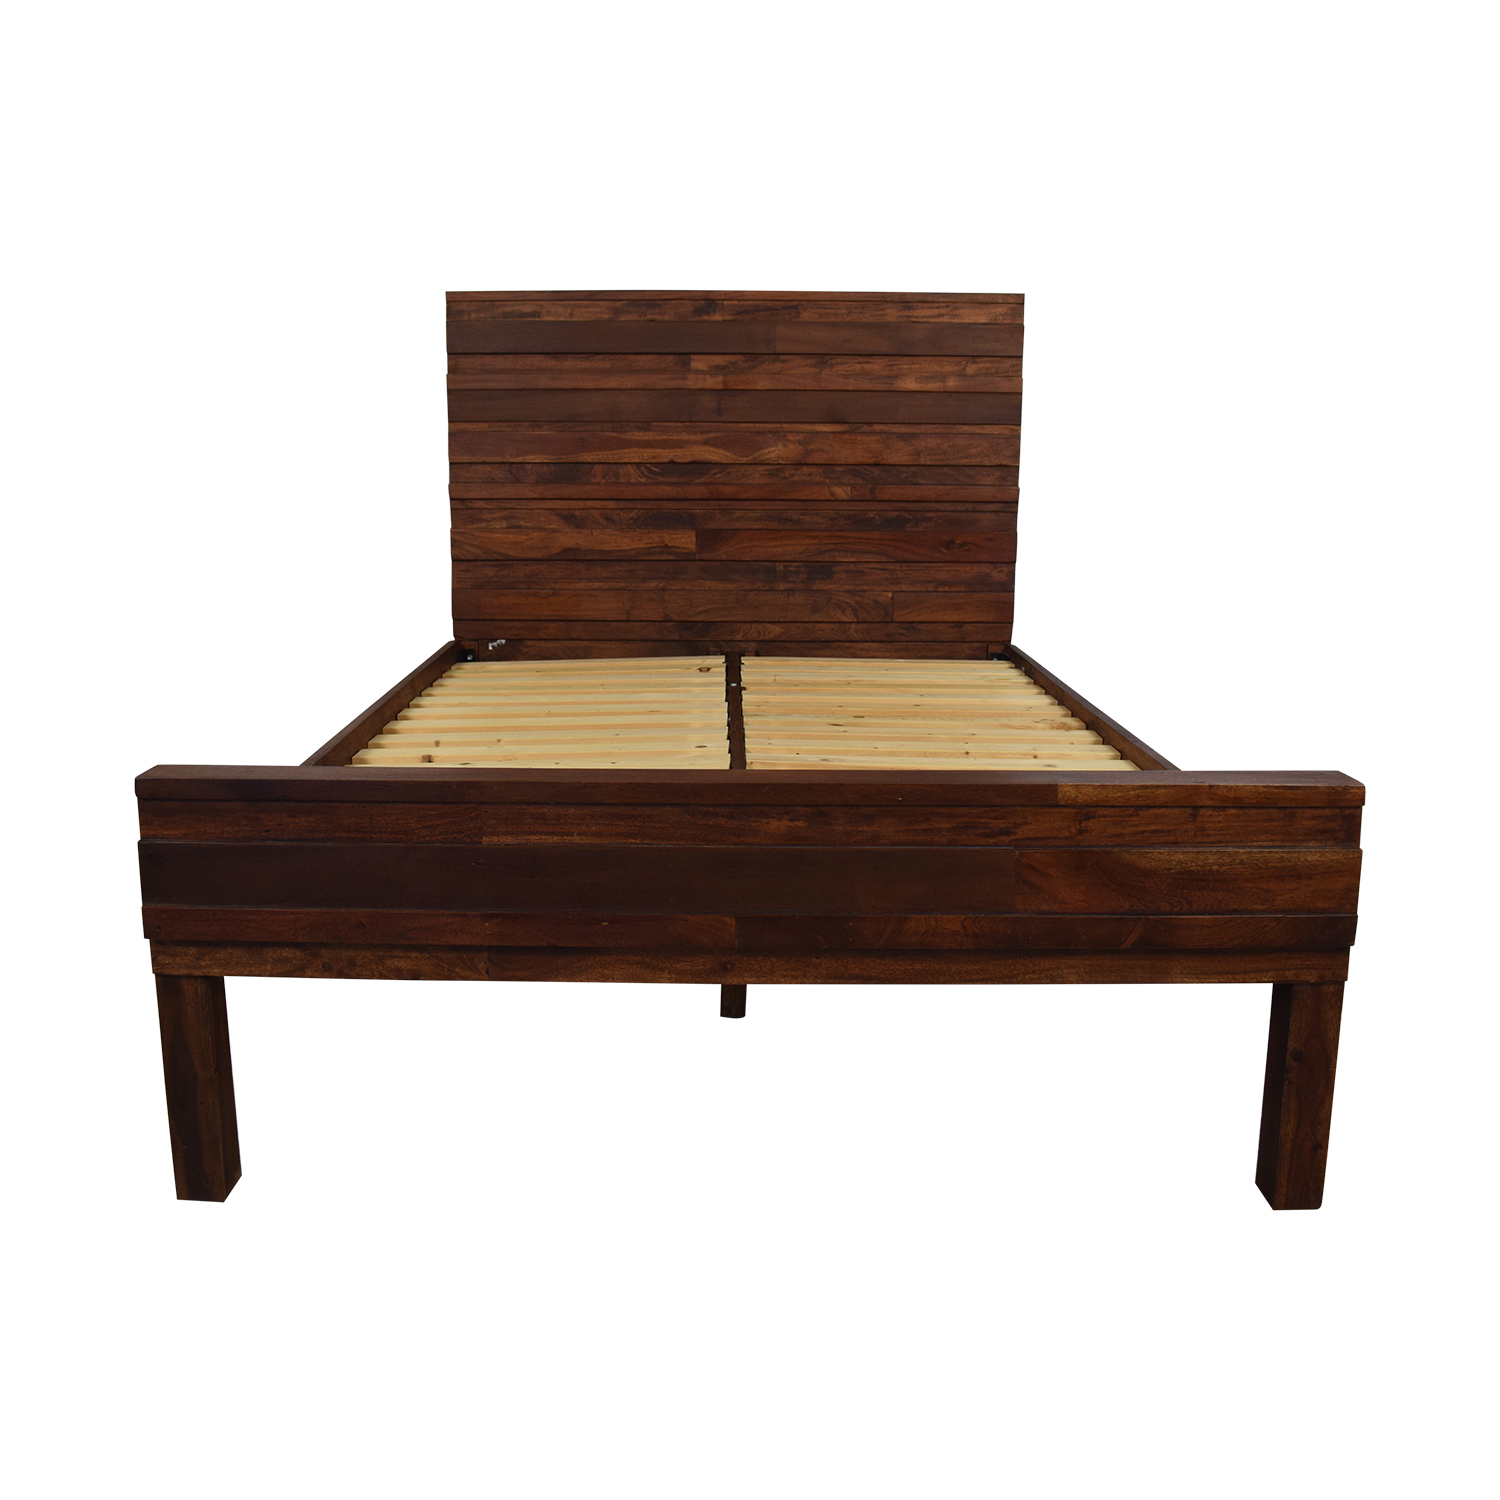 West Elm West Elm Stria Full Bed Frame